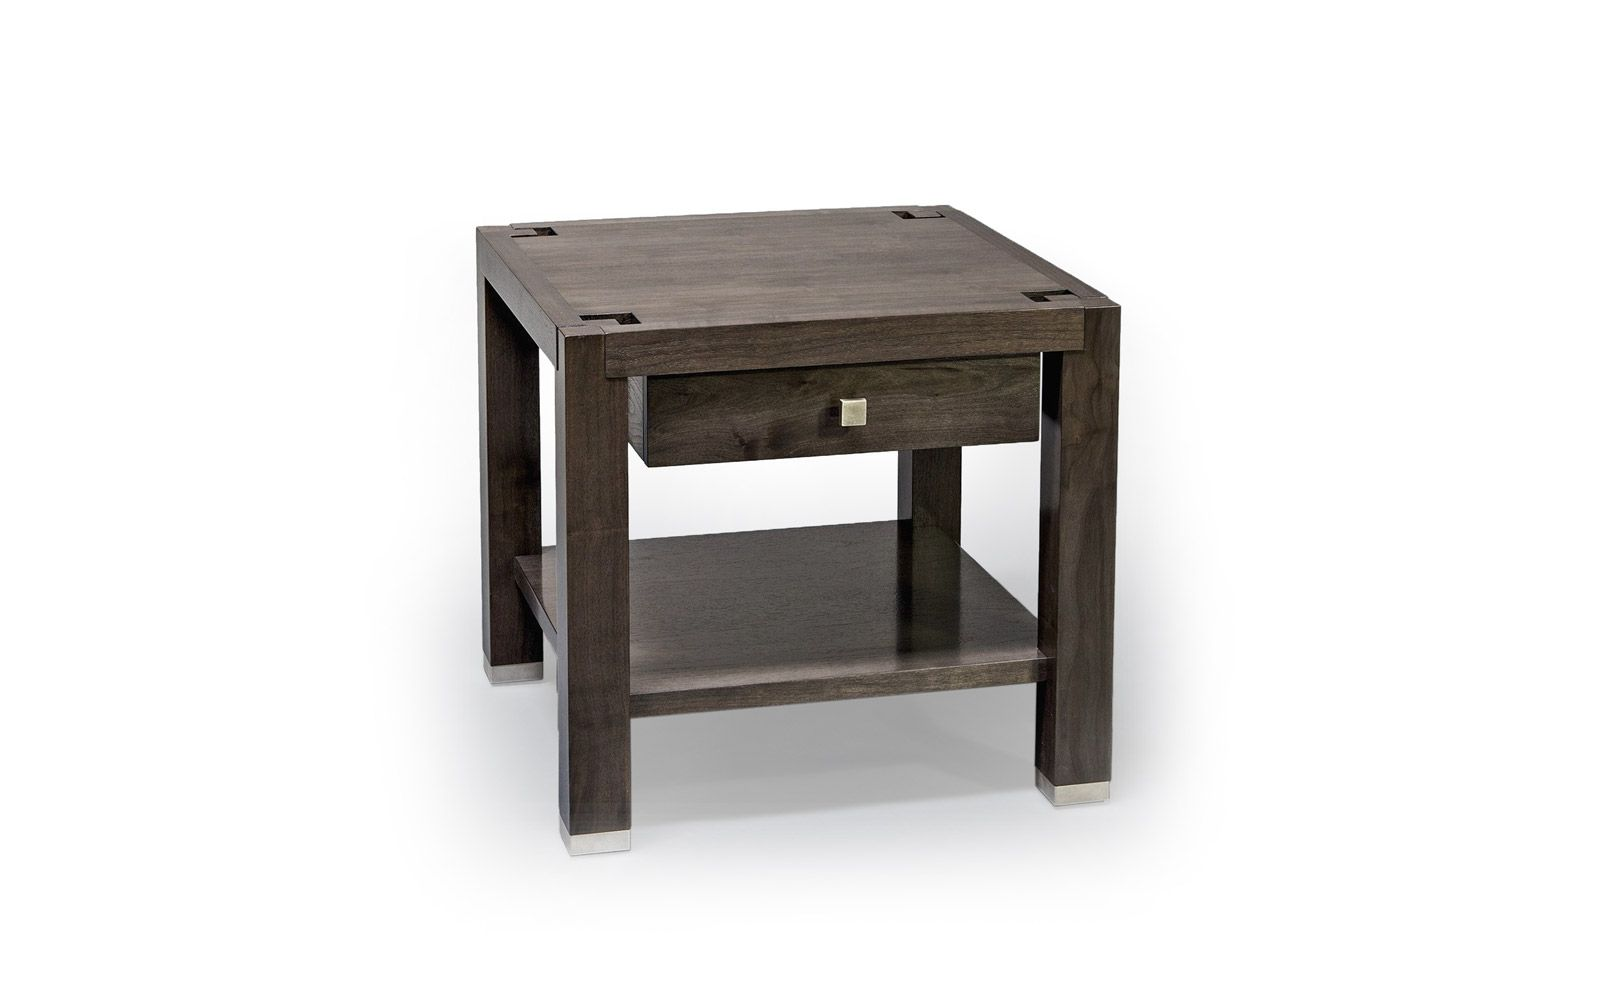 Architrave Side Table With Drawer And Shelf Knowlton Brothers Side Table Side Table With Drawer Fine Furniture